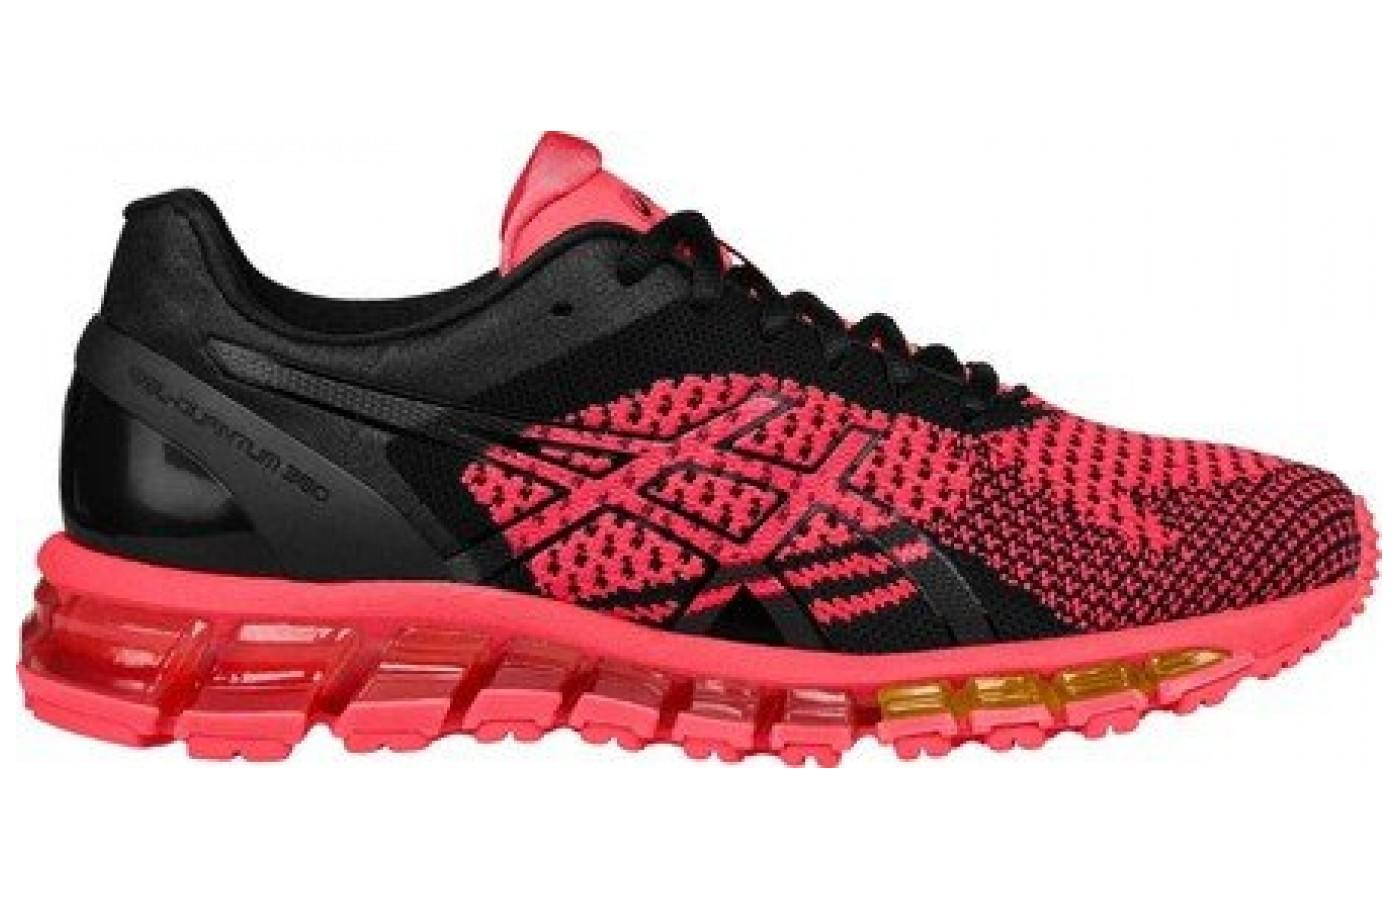 The Heel Clutching System of the Asics Gel Quantum 360 Knit provides support and a nice fit